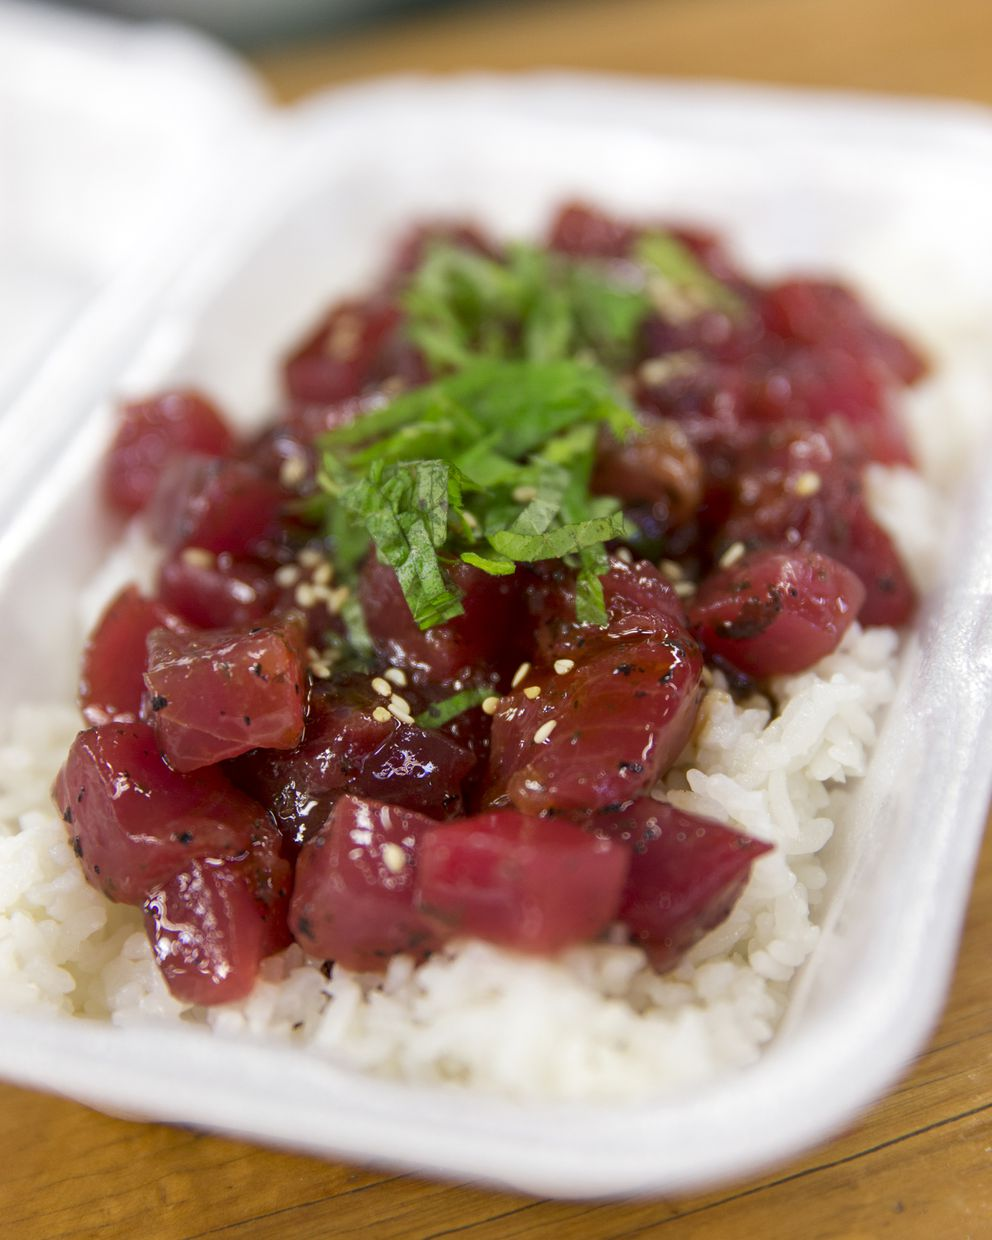 Ume-shiso ahi poke on a bed of rice at Maguro Brothers, in Chinatown's Kekaulike Market, Honolulu, Dec. 28, 2017. (Marco Garcia/The New York Times)